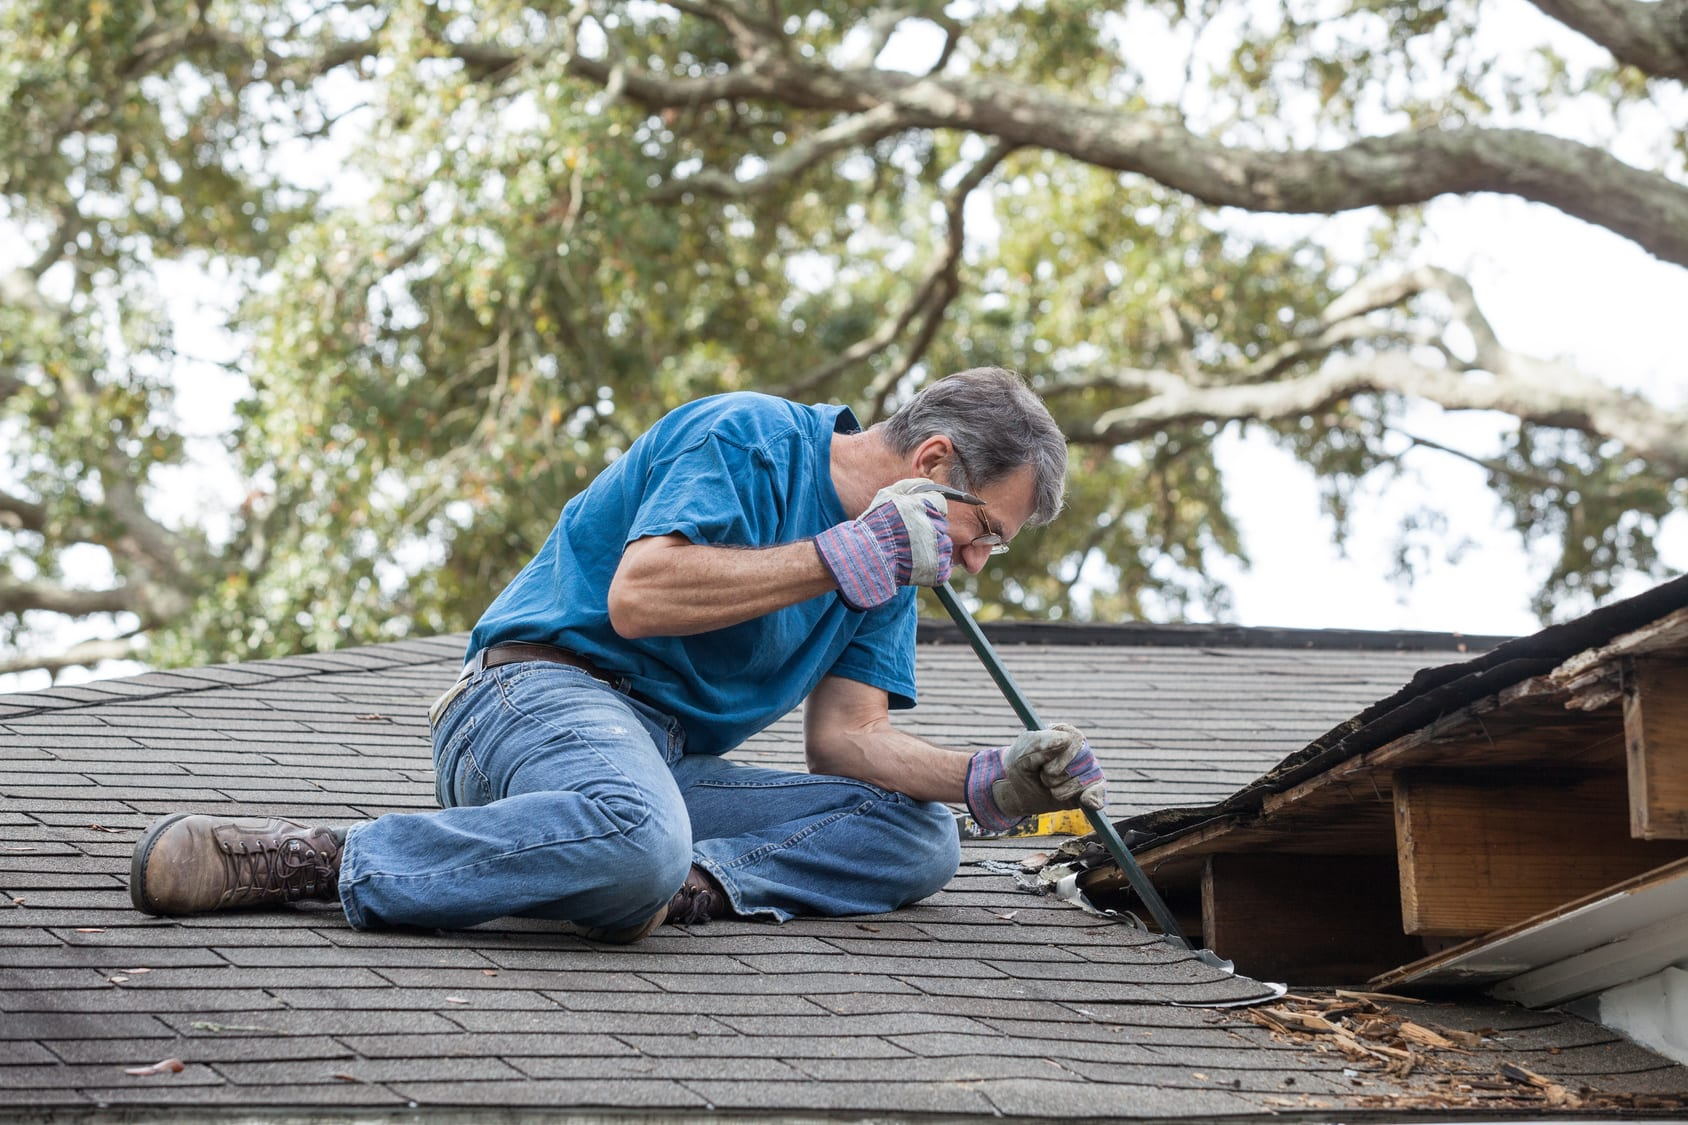 Man Repairing Leaking Roof